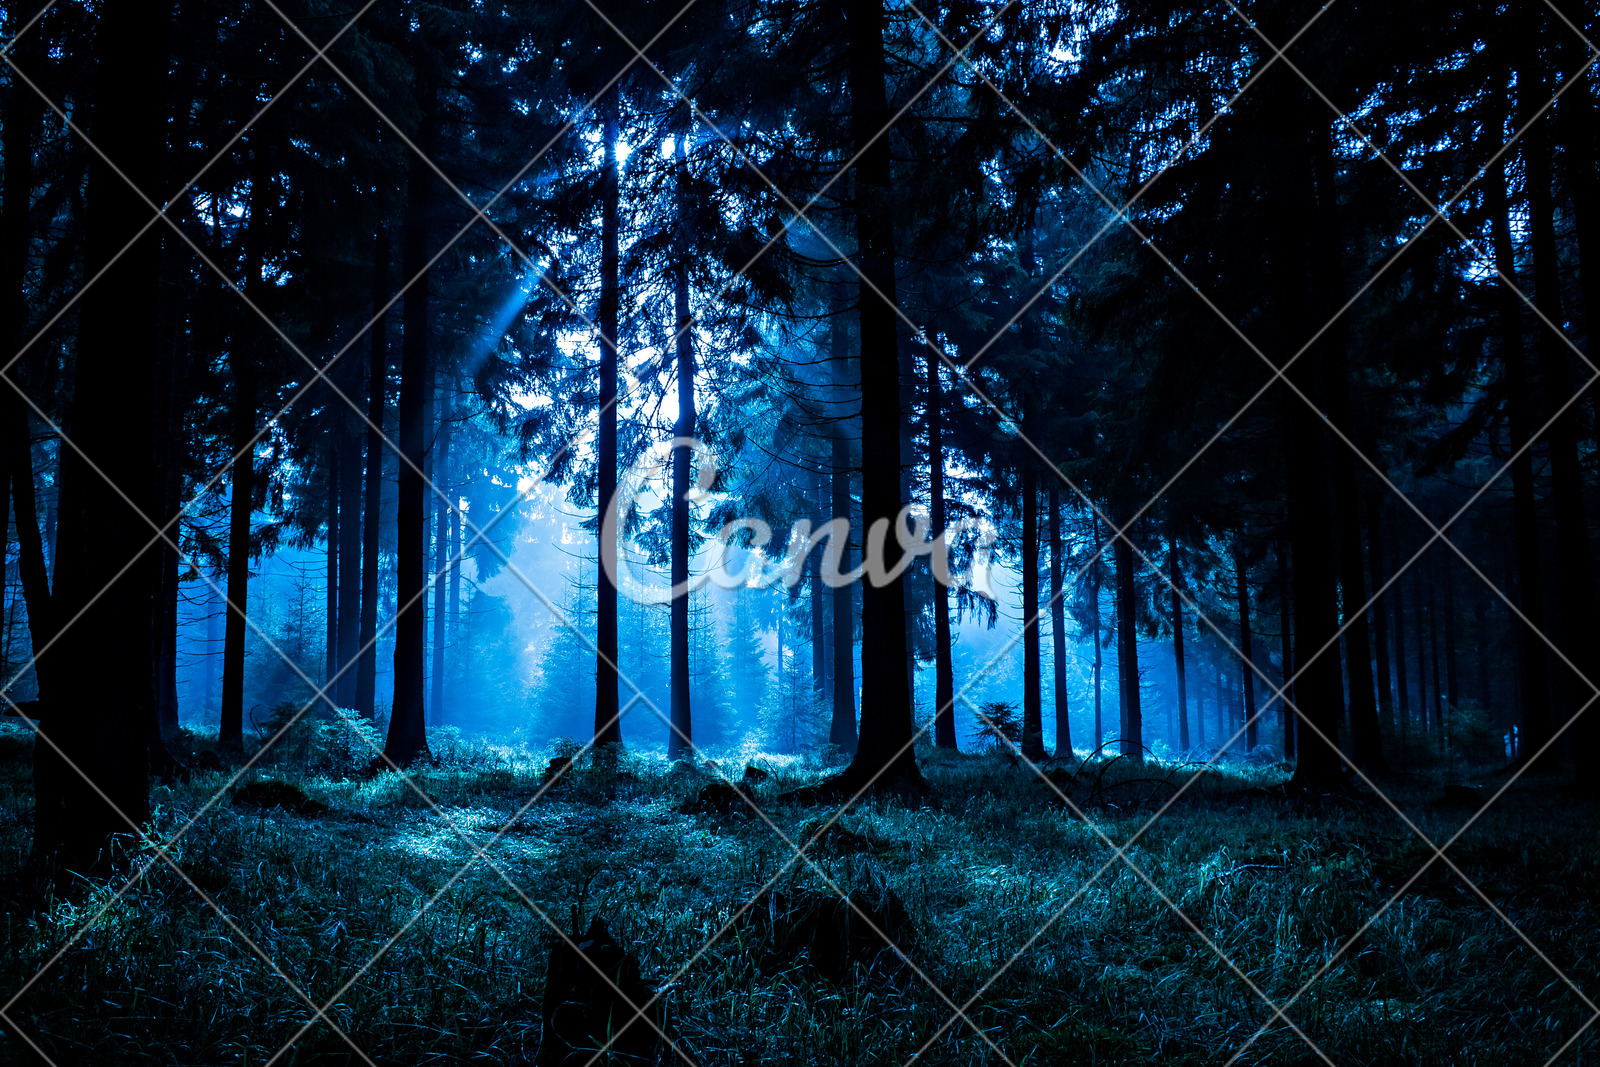 night forest photos by